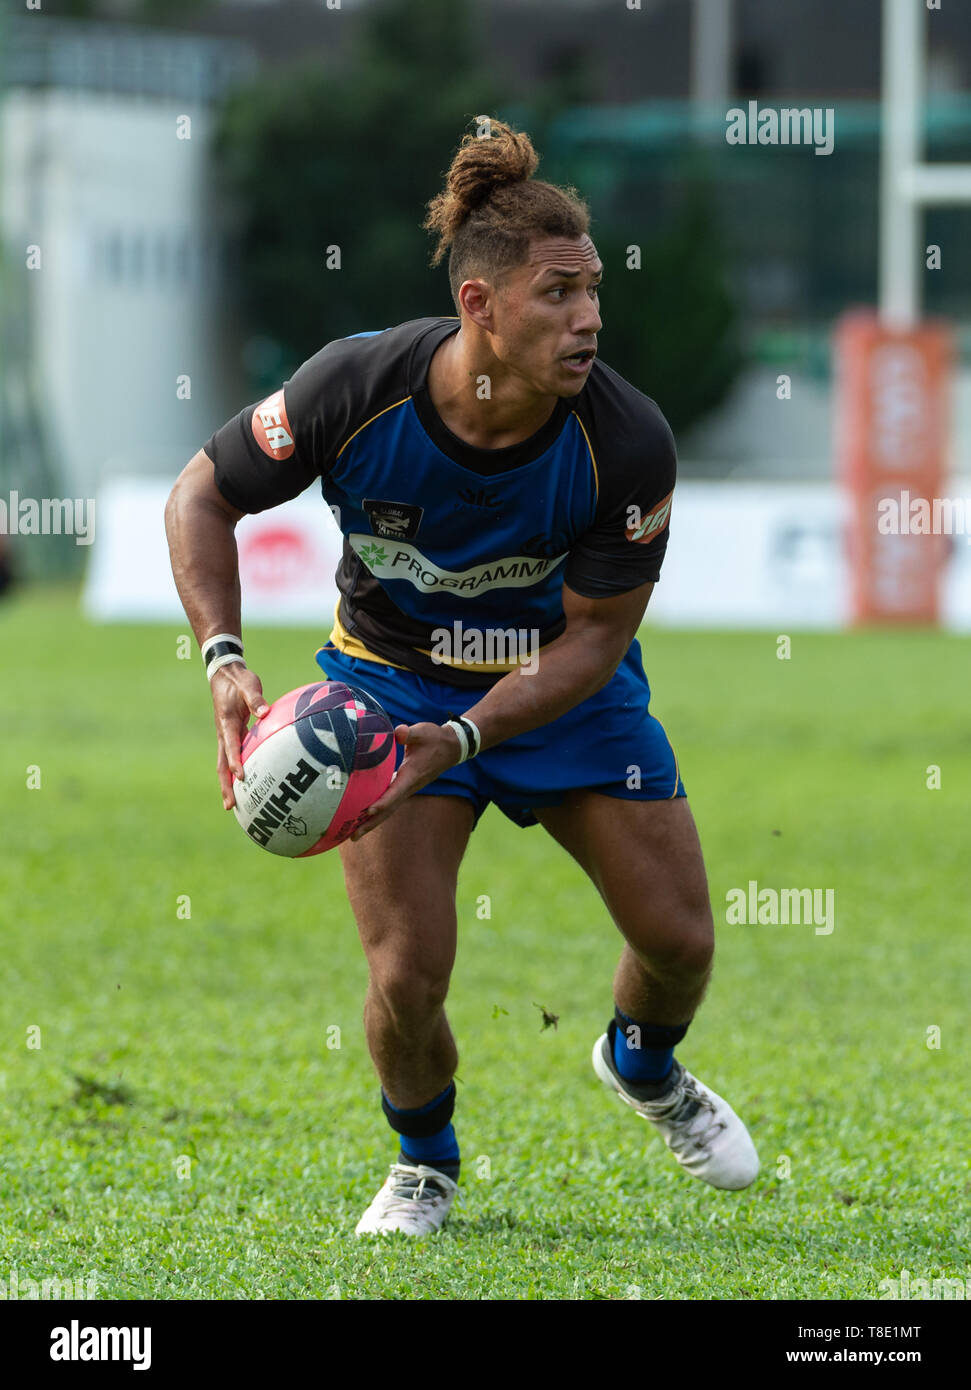 Hong Kong, China. 12th May, 2019. Western Force's Issak FINES-LELEIWASA passes the ball.Western Force vs South China Tigers Global Rapid Rugby. The Western Force make their inaugural appearance in Hong Kong facing off against the FWD South China Tigers in the finale of the Global Rapid Rugby Asian Showcase Series Credit: Jayne Russell/ZUMA Wire/Alamy Live News Stock Photo